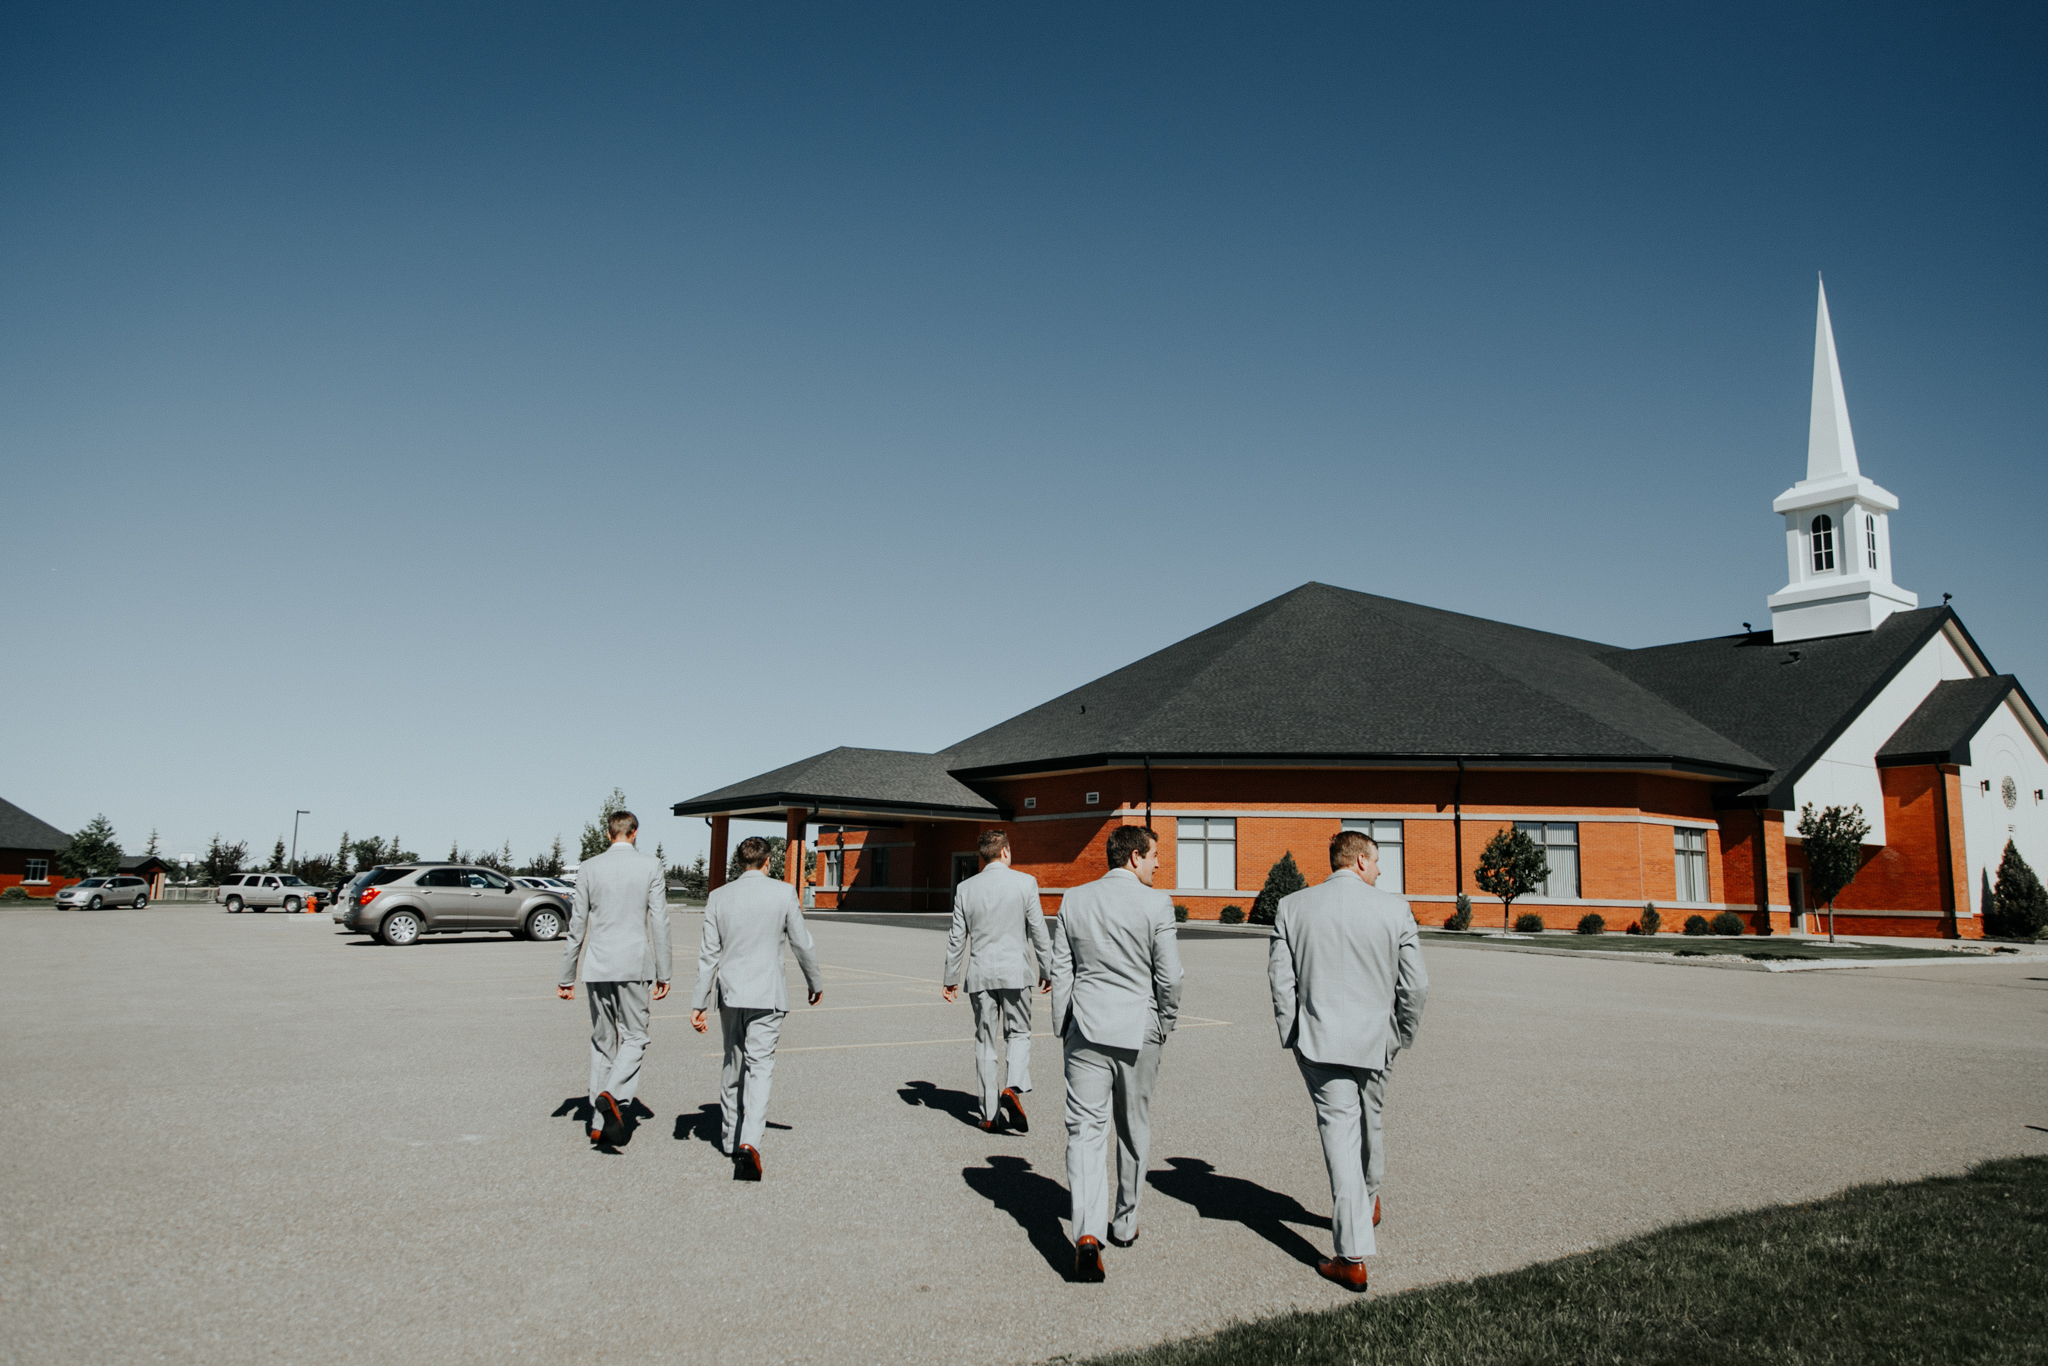 lethbridge-wedding-photographer-love-and-be-loved-photography-steven-marlene-reformed-church-photo-picture-image-2.jpg